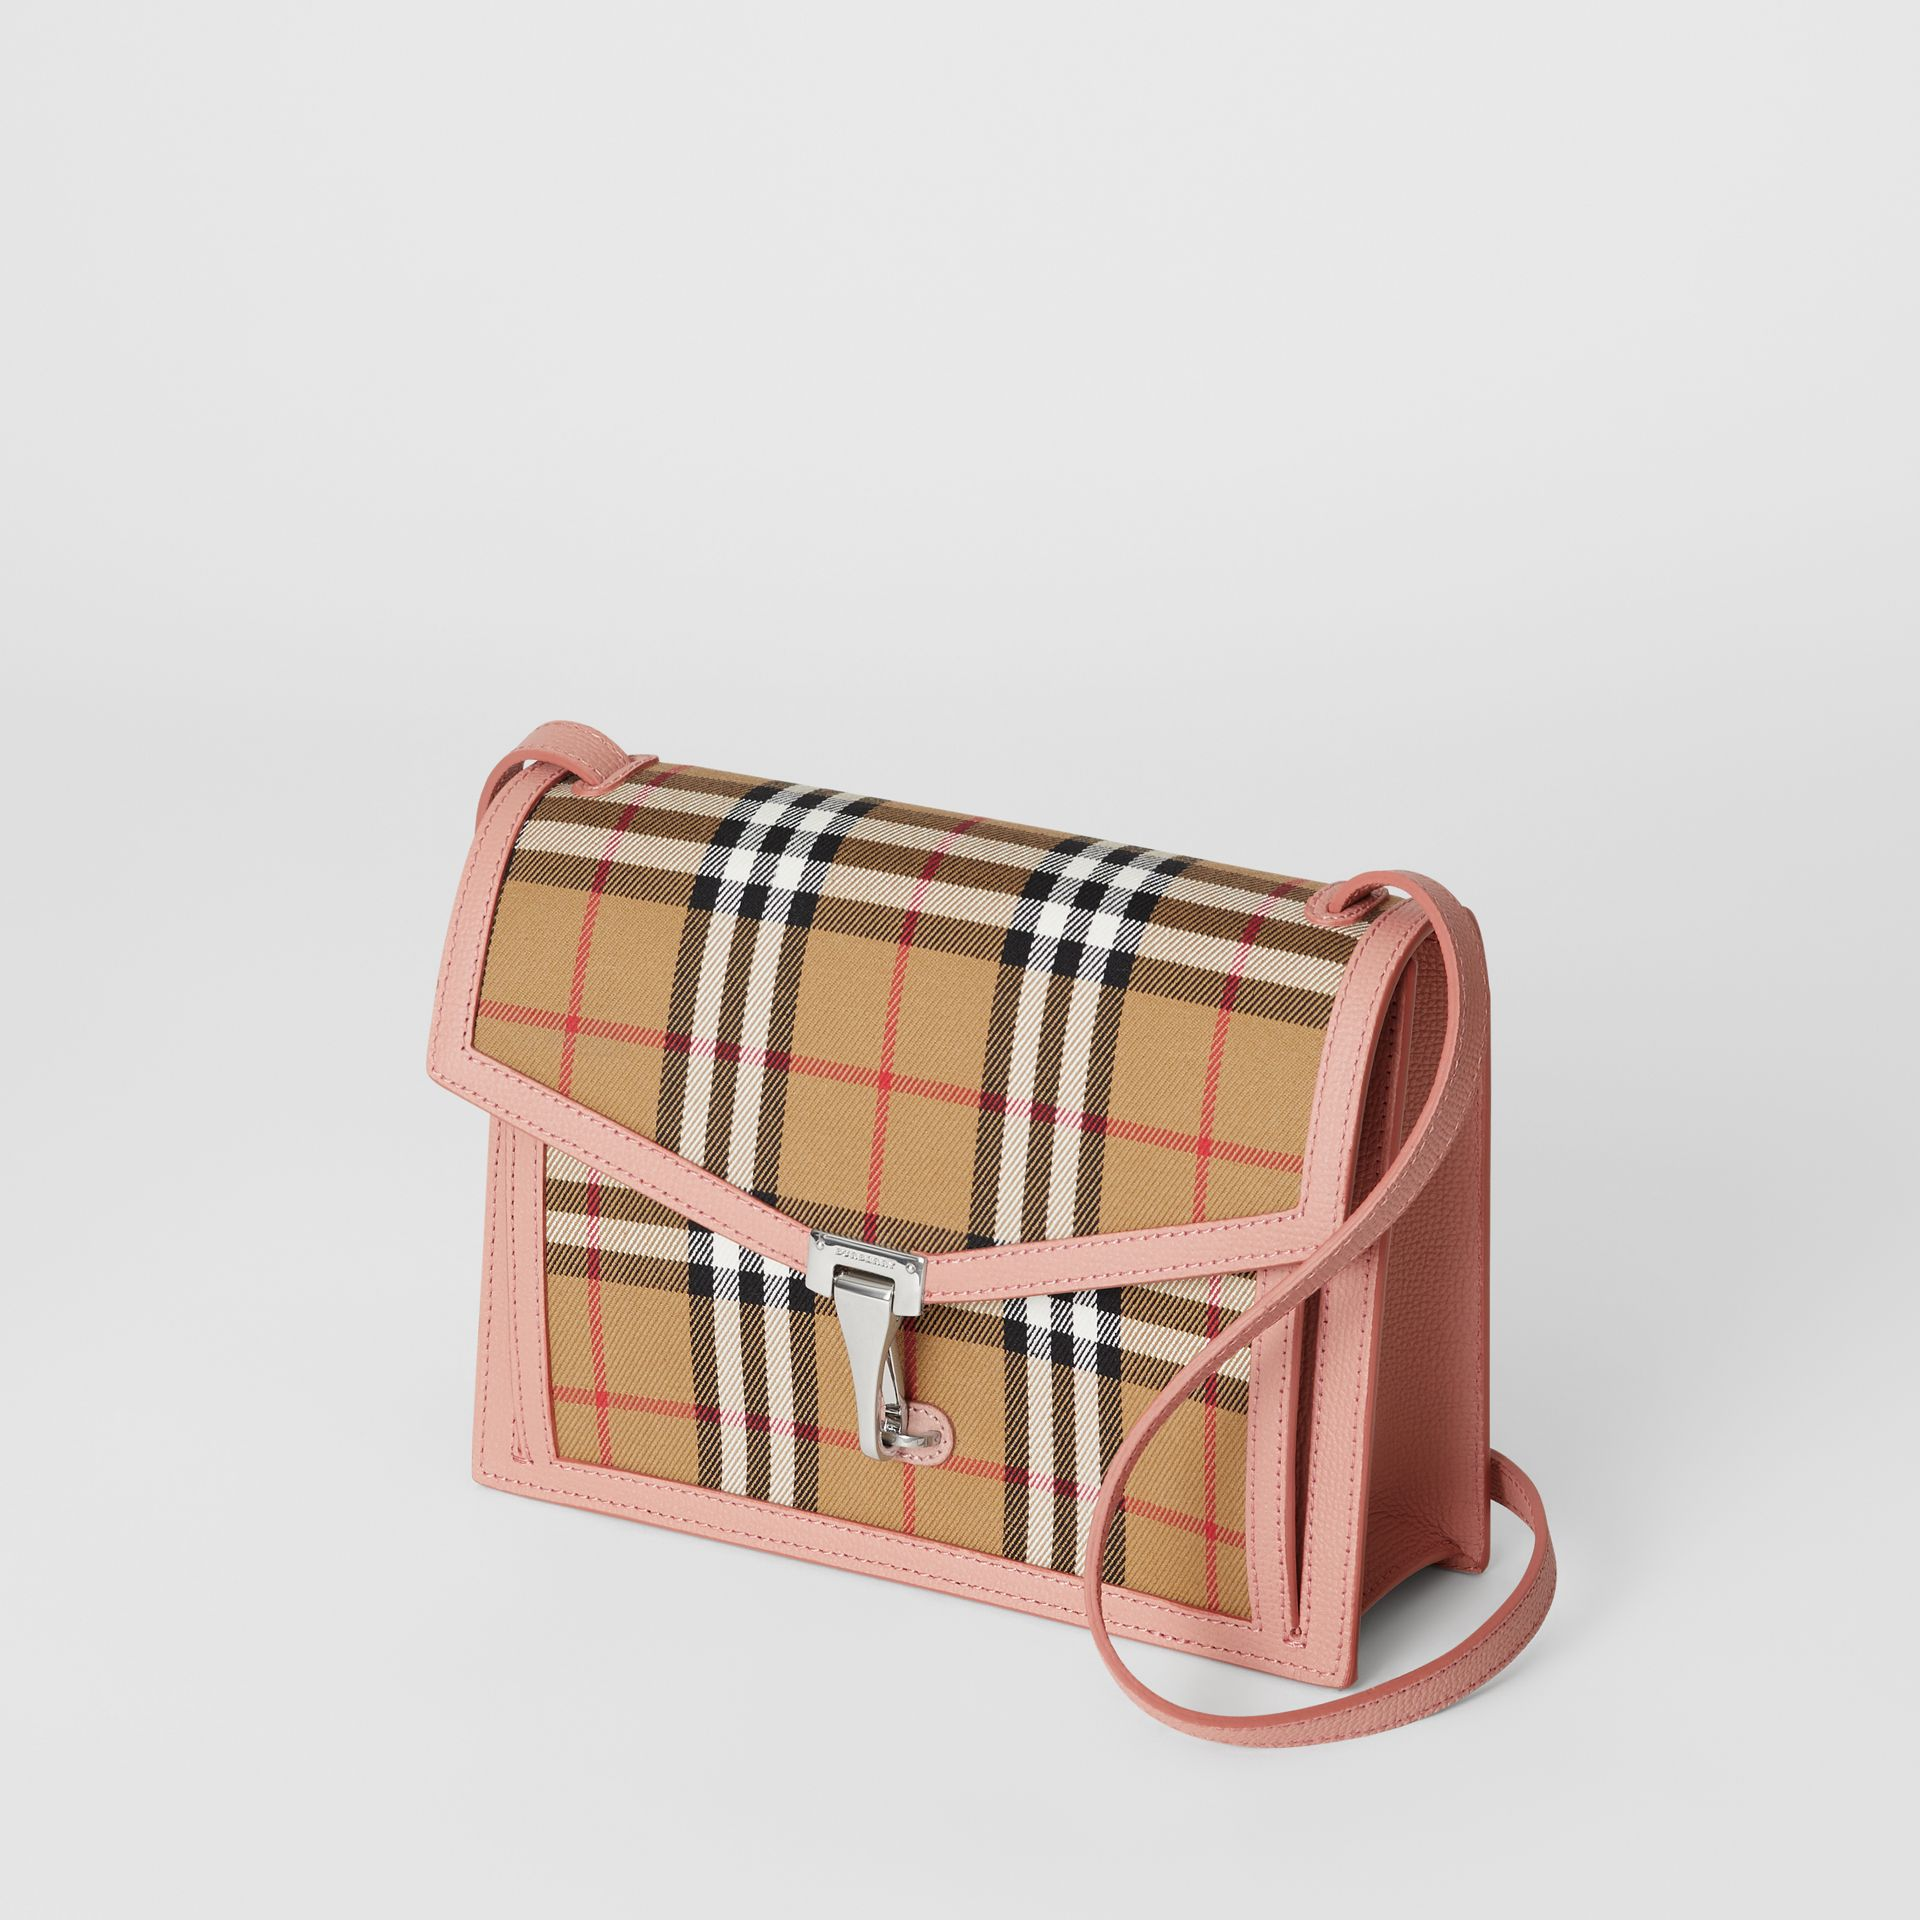 Small Vintage Check and Leather Crossbody Bag in Ash Rose - Women | Burberry - gallery image 4